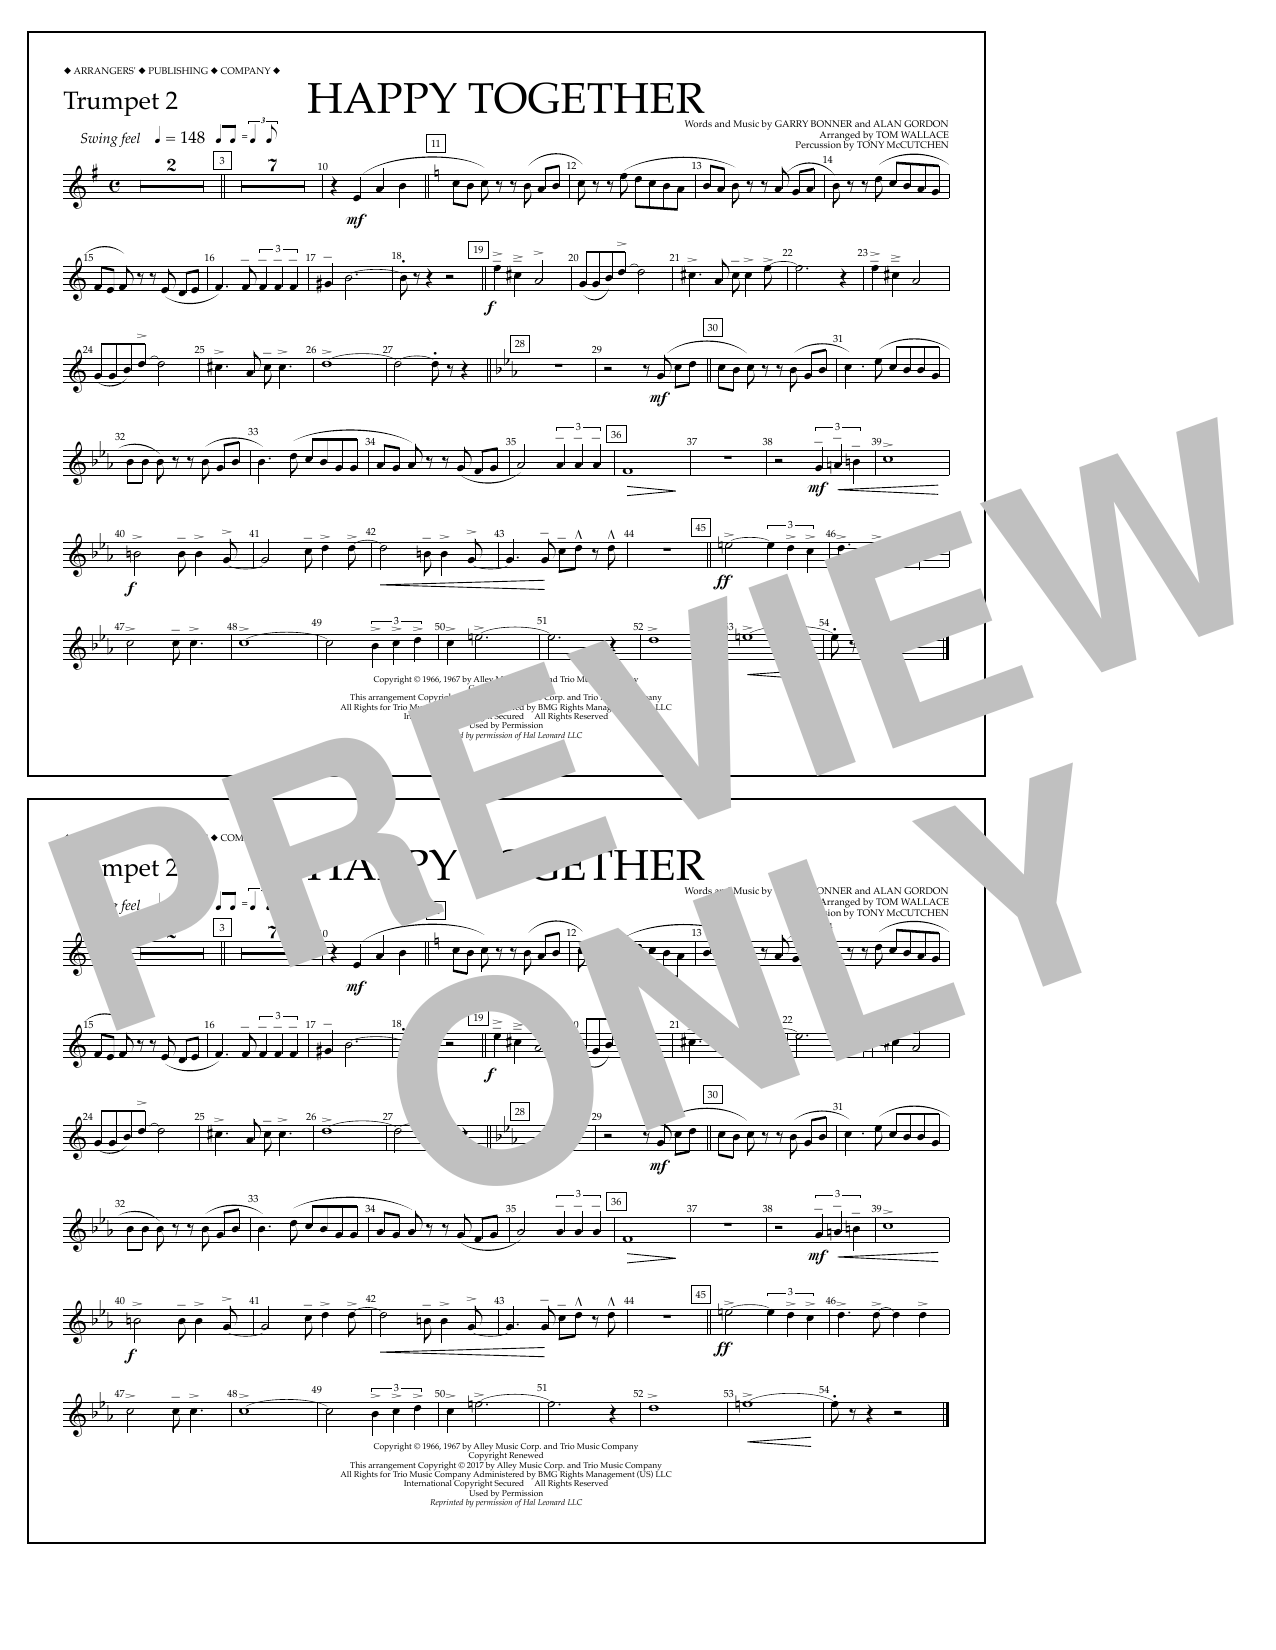 Happy Together - Trumpet 2 Sheet Music